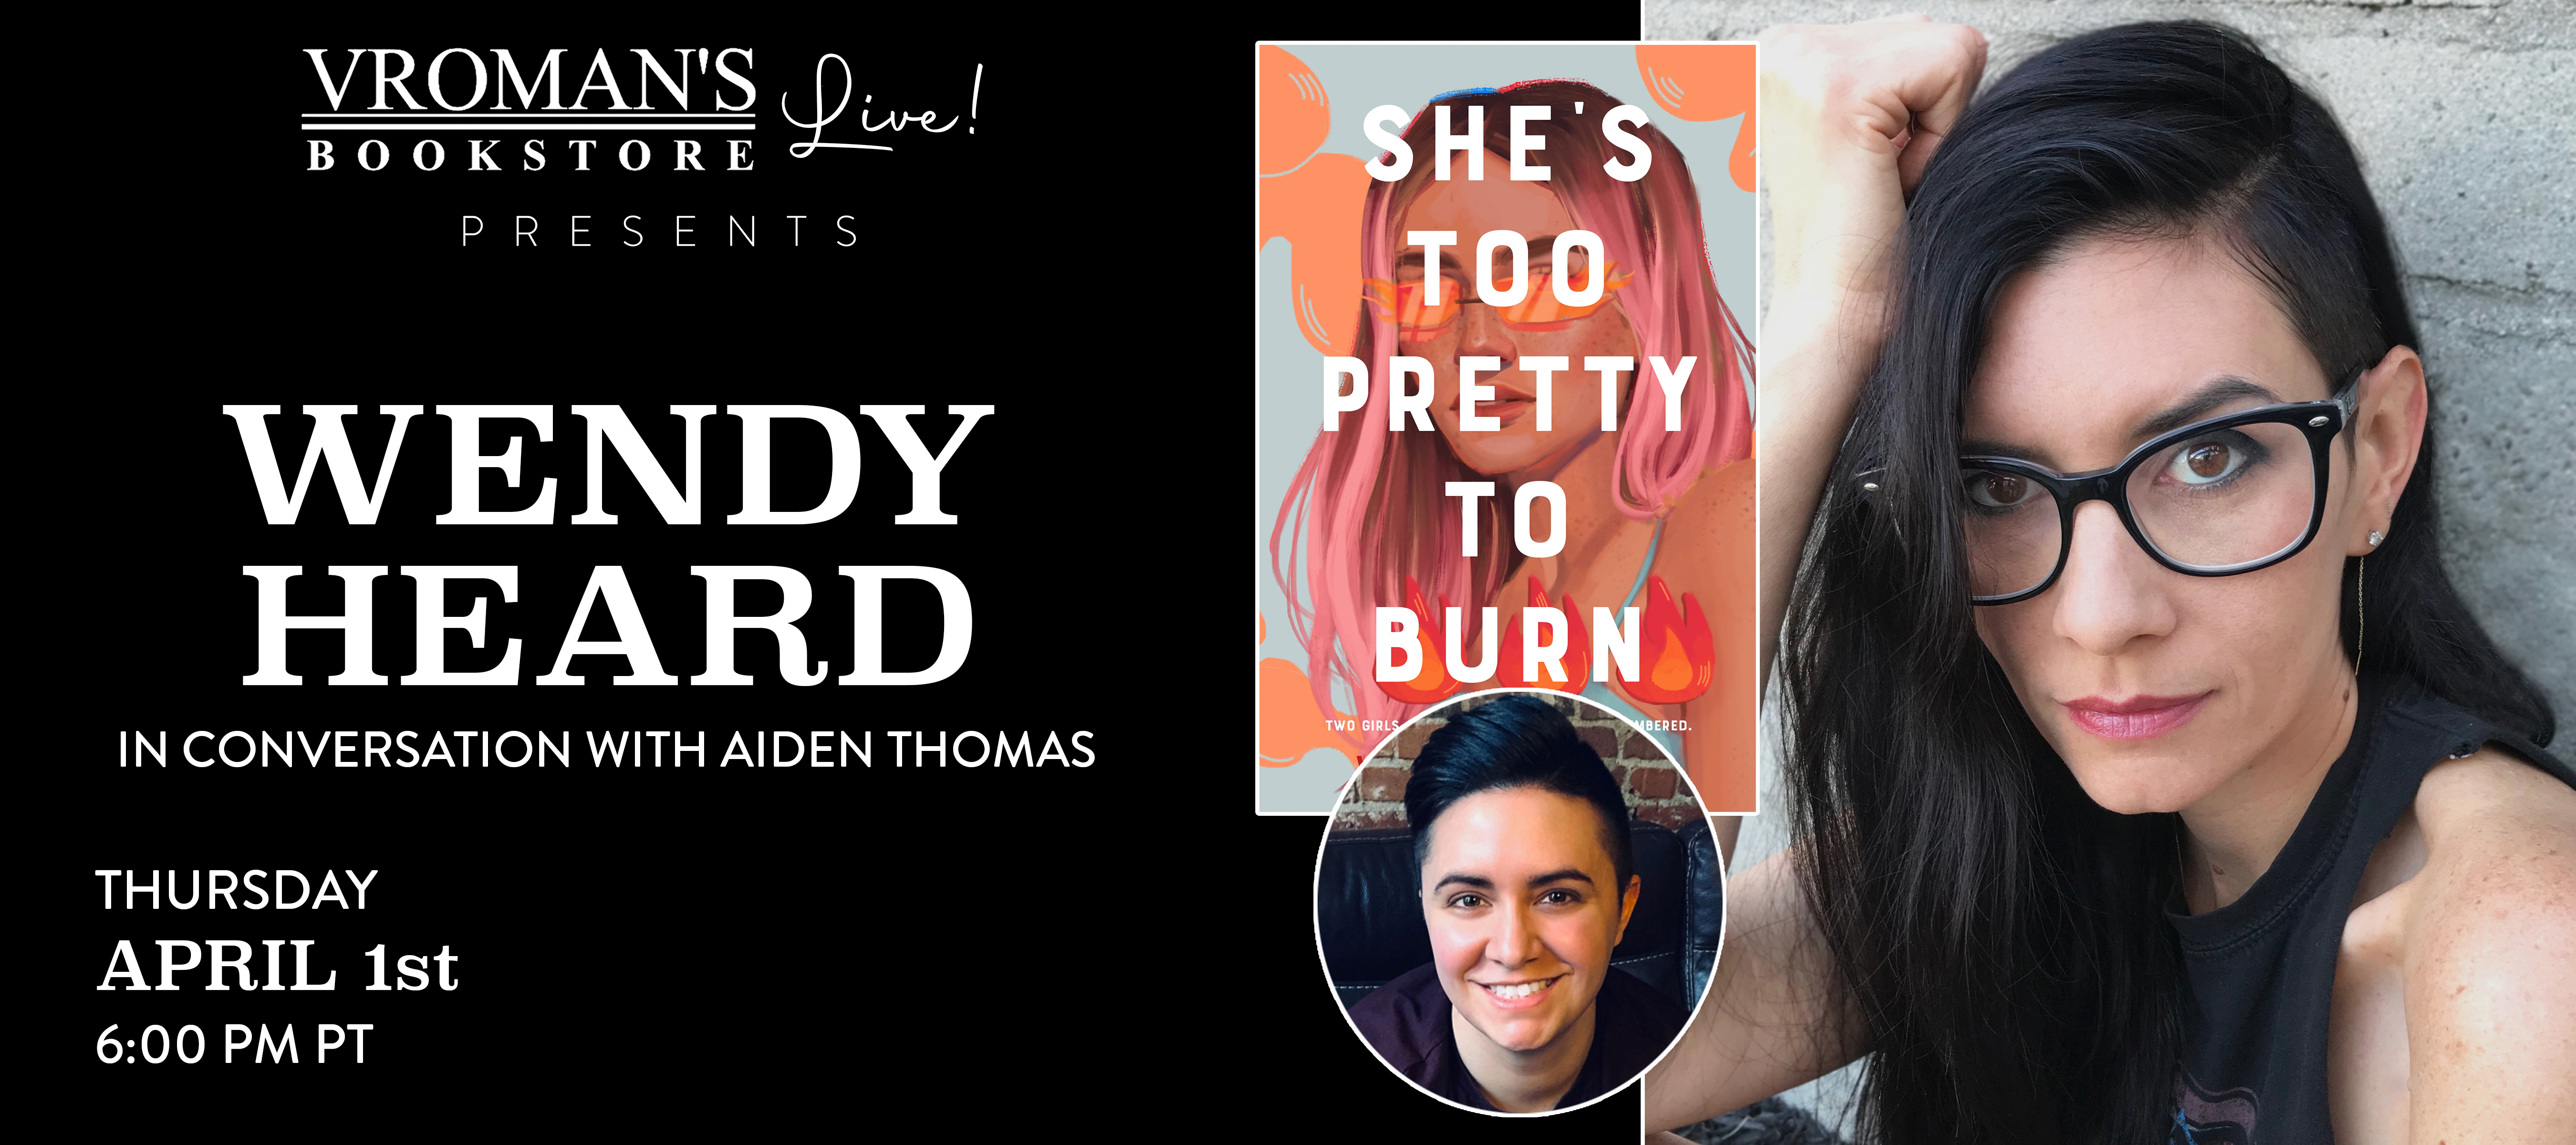 Wendy Heard, in conversation with Aiden Thomas, on Thursday April 1st at 6pm